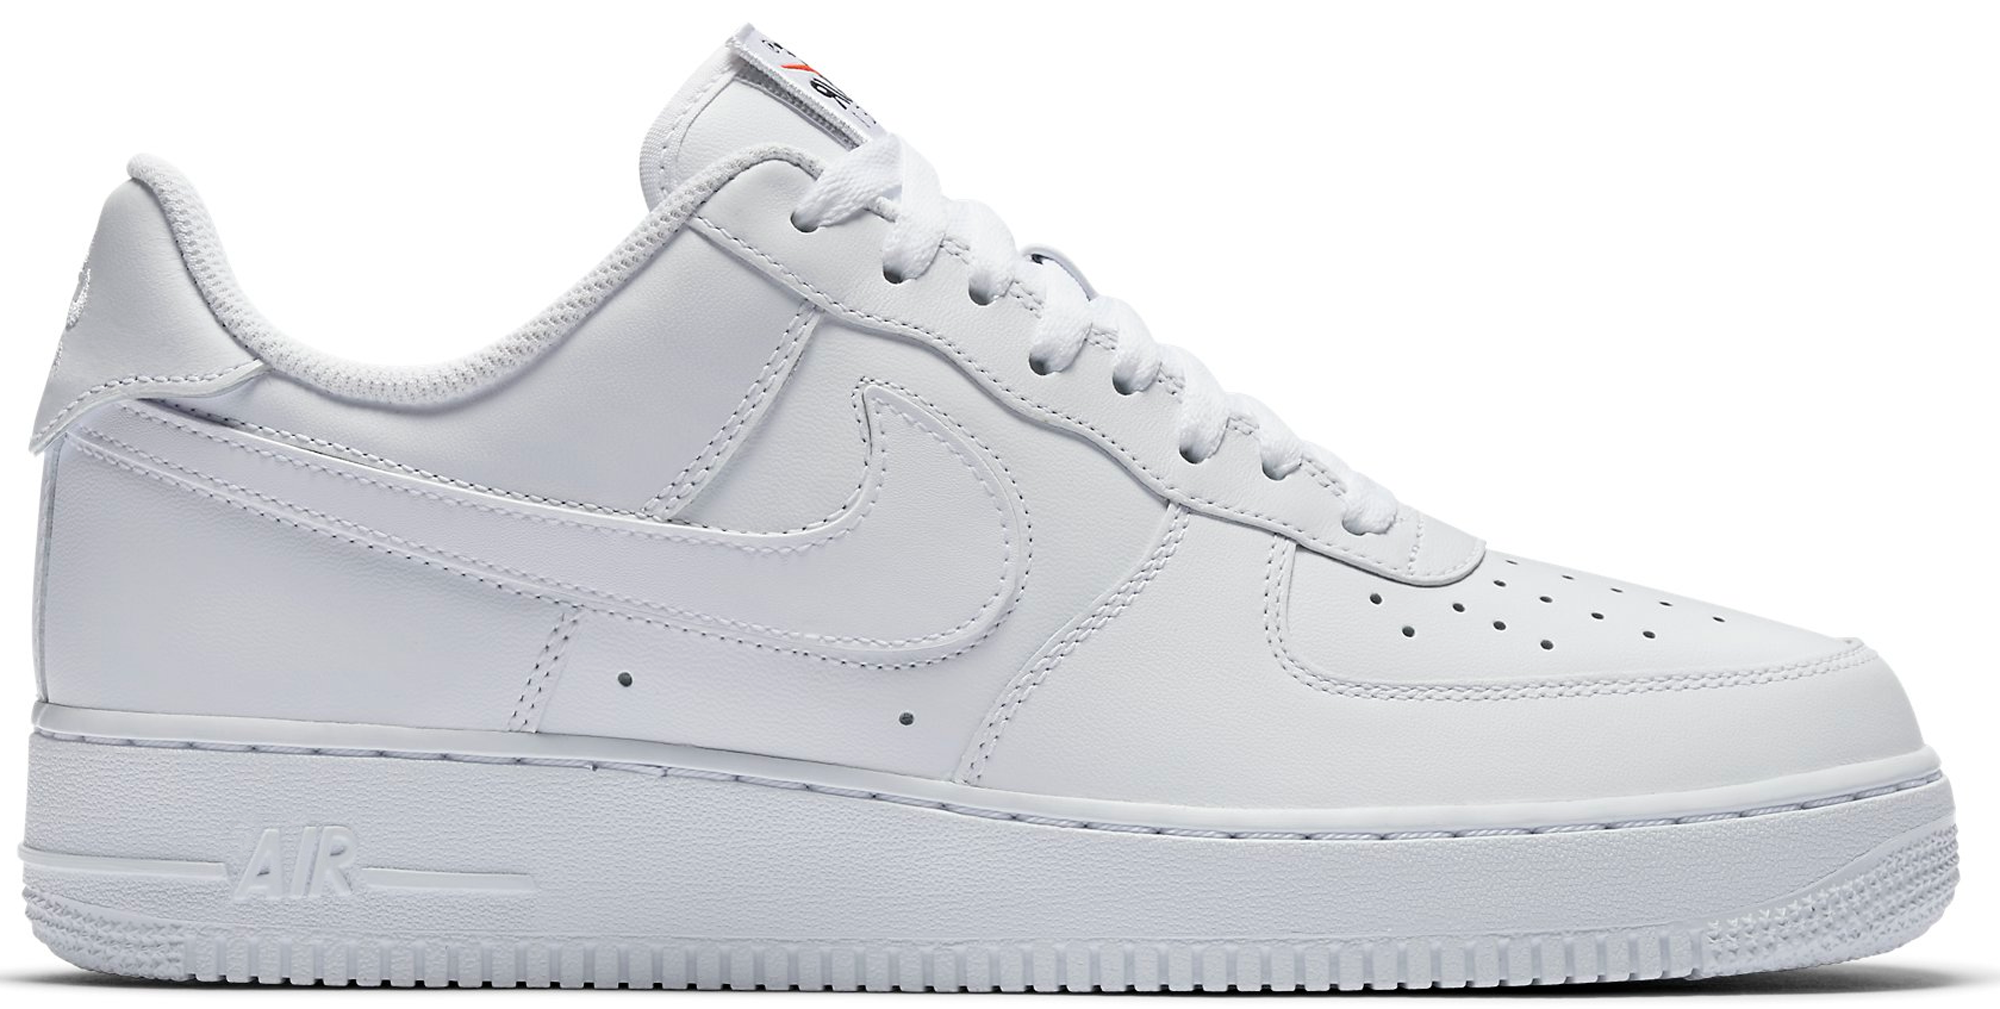 nike air force 1 swoosh all star nz